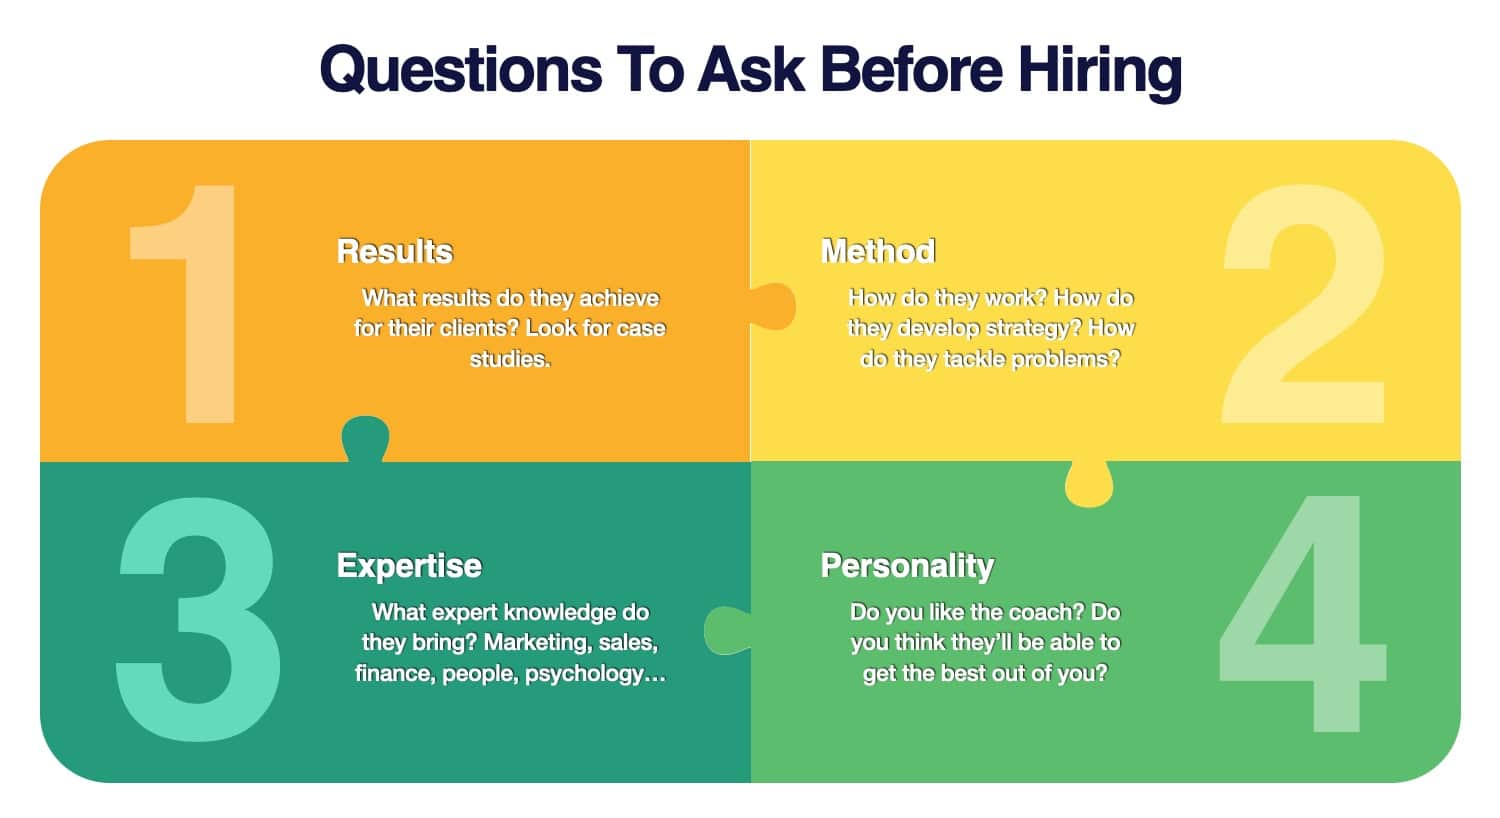 qjuestions to ask before hiring a business coach